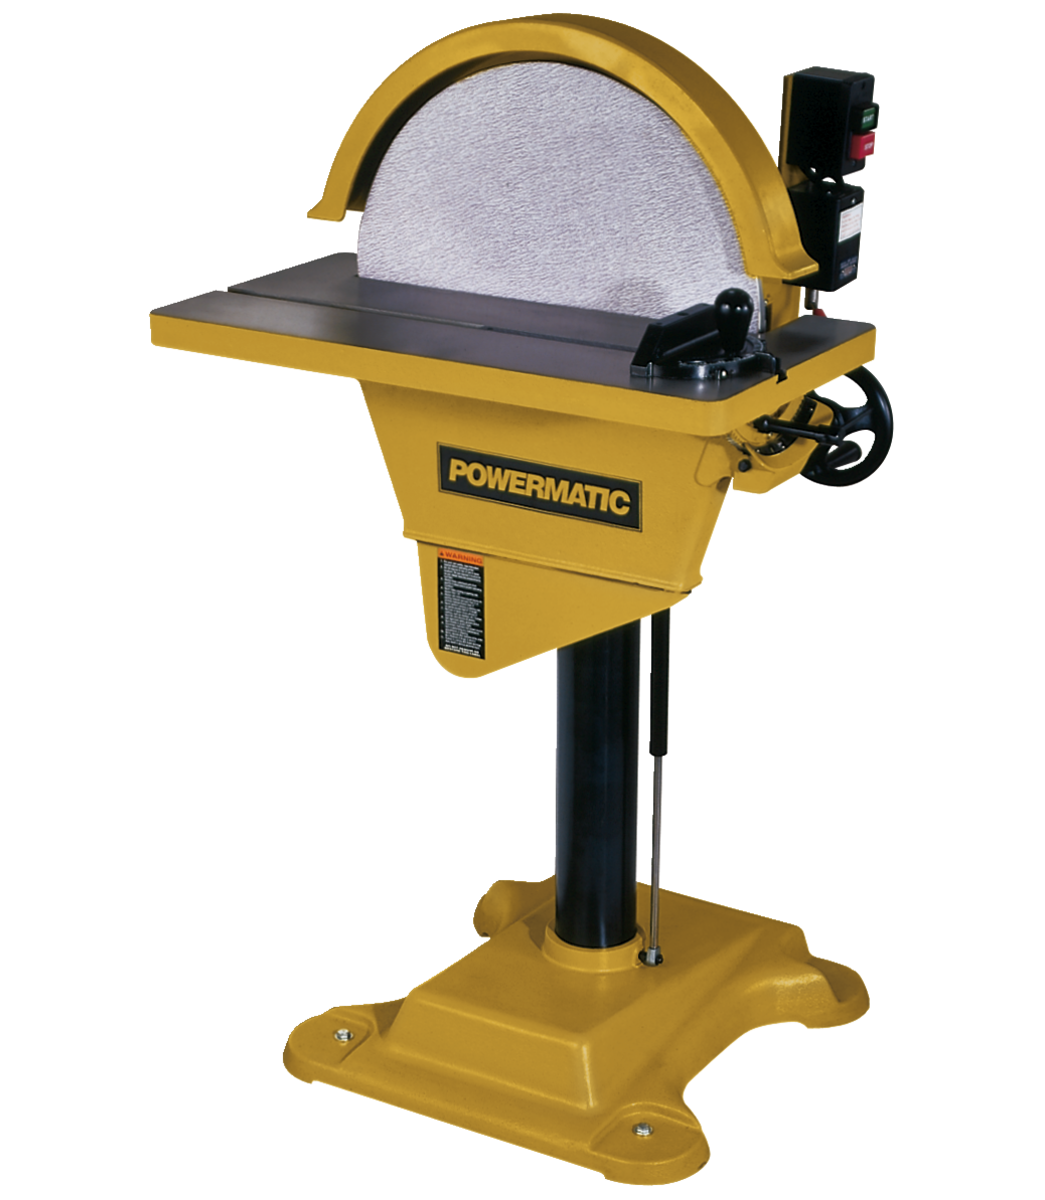 Manual: DS20 Disc Sander, 3HP 3PH 230/460V